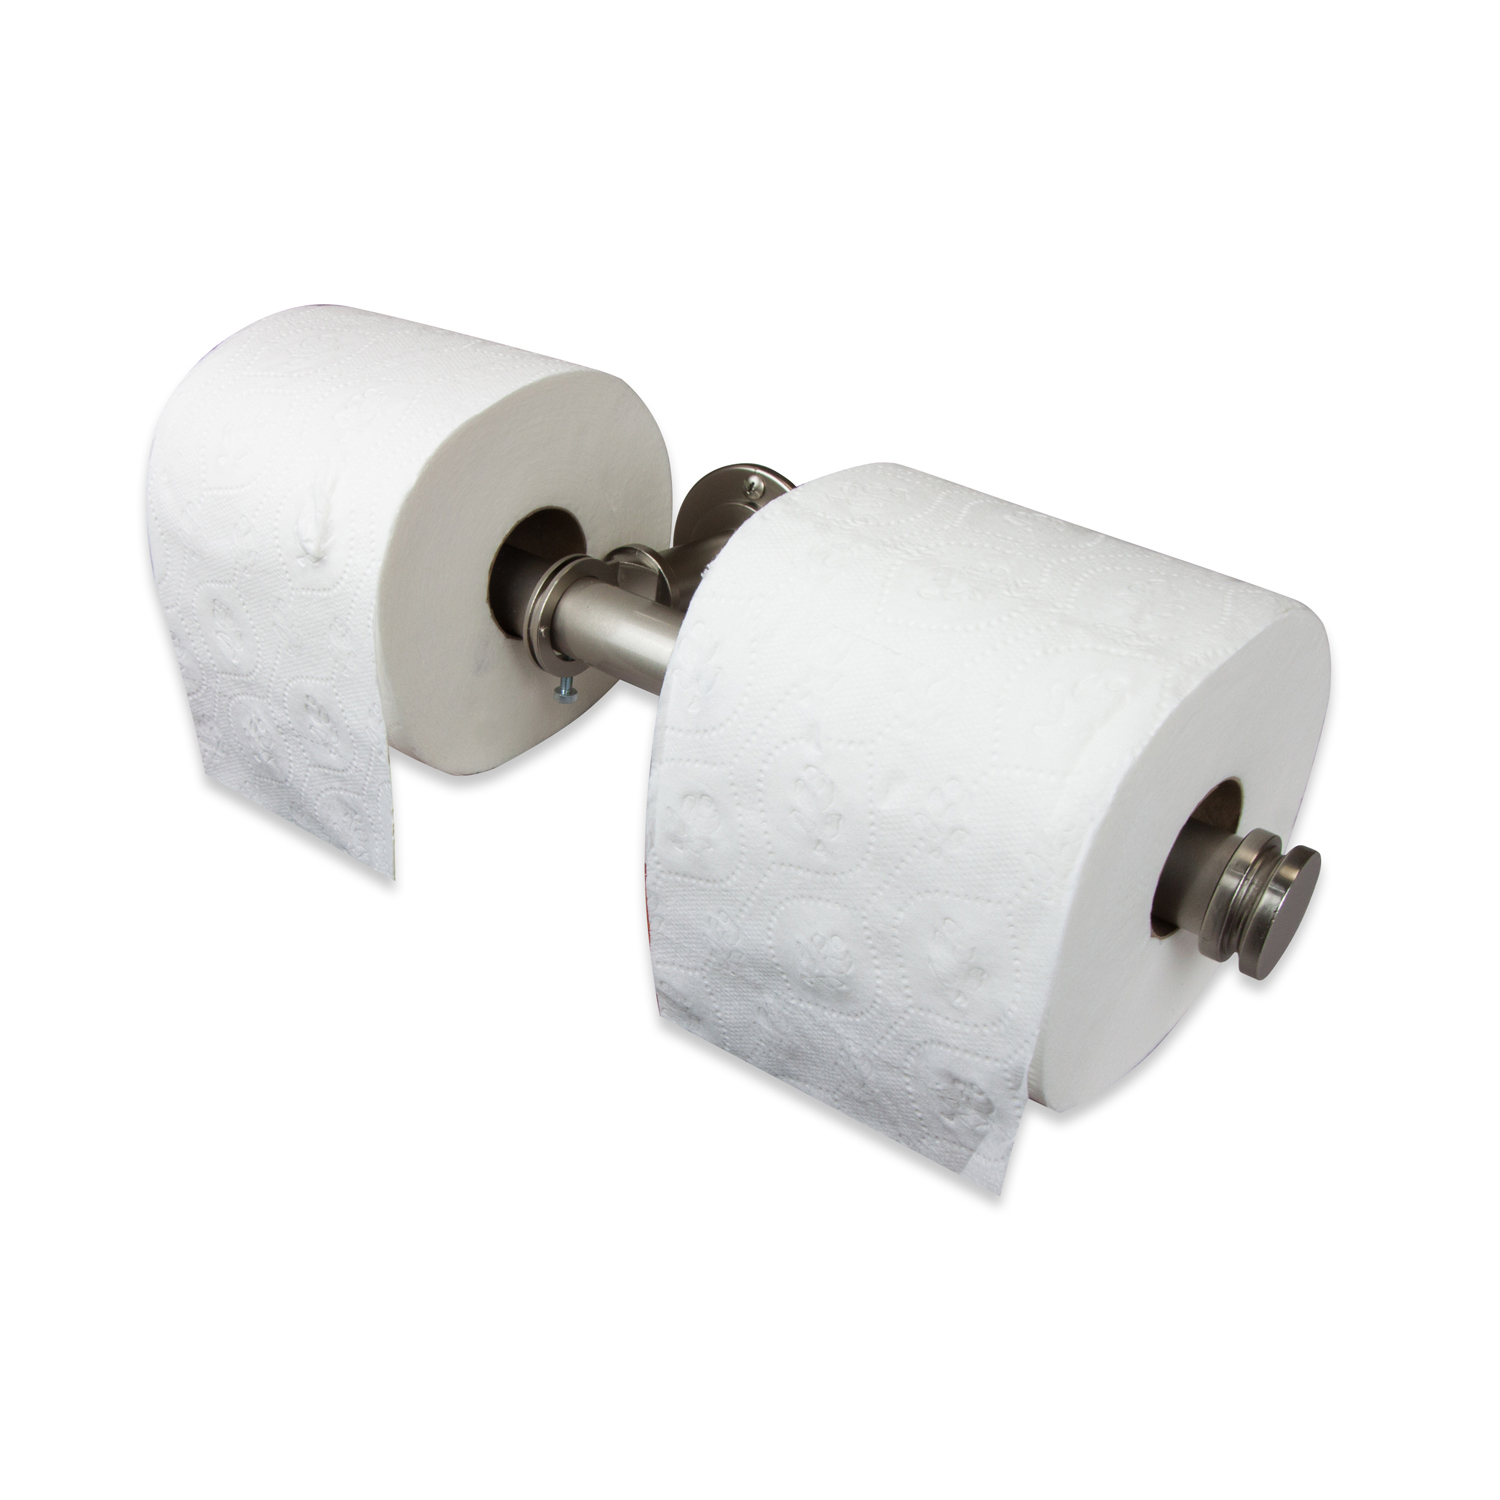 Satin Nickel Industrial Pipe Double Toilet Paper Holder or Closet Rod